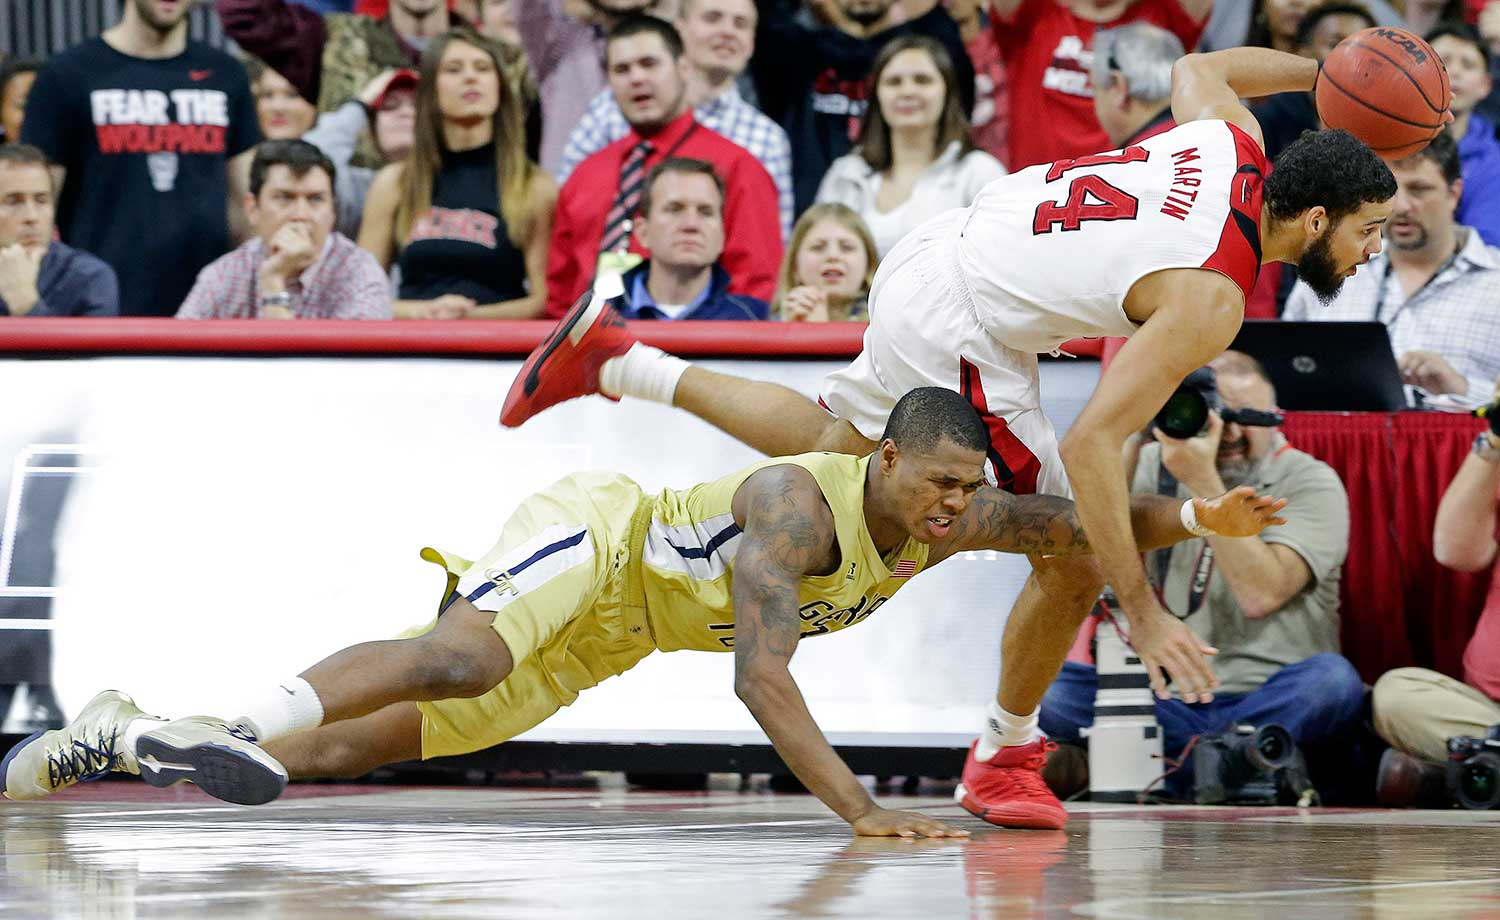 Georgia Tech's Marcus Georges-Hunt chases the ball as  North Carolina State's Caleb Martin dribbles during a game in Raleigh, N.C. Georgia Tech won 90-83.